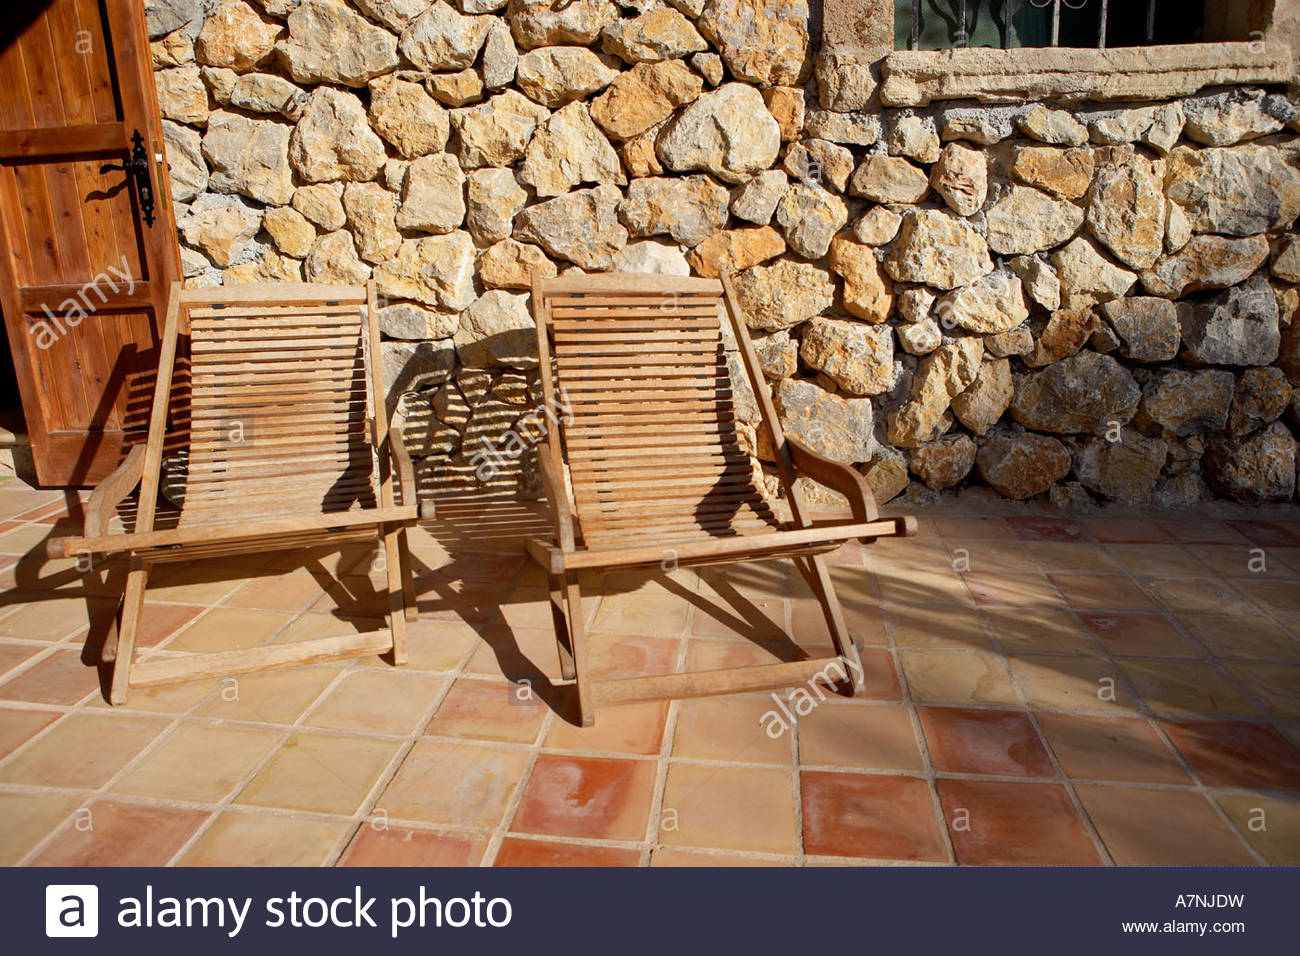 Two wooden deckchairs on tiled patio stone wall in background - Stock Image